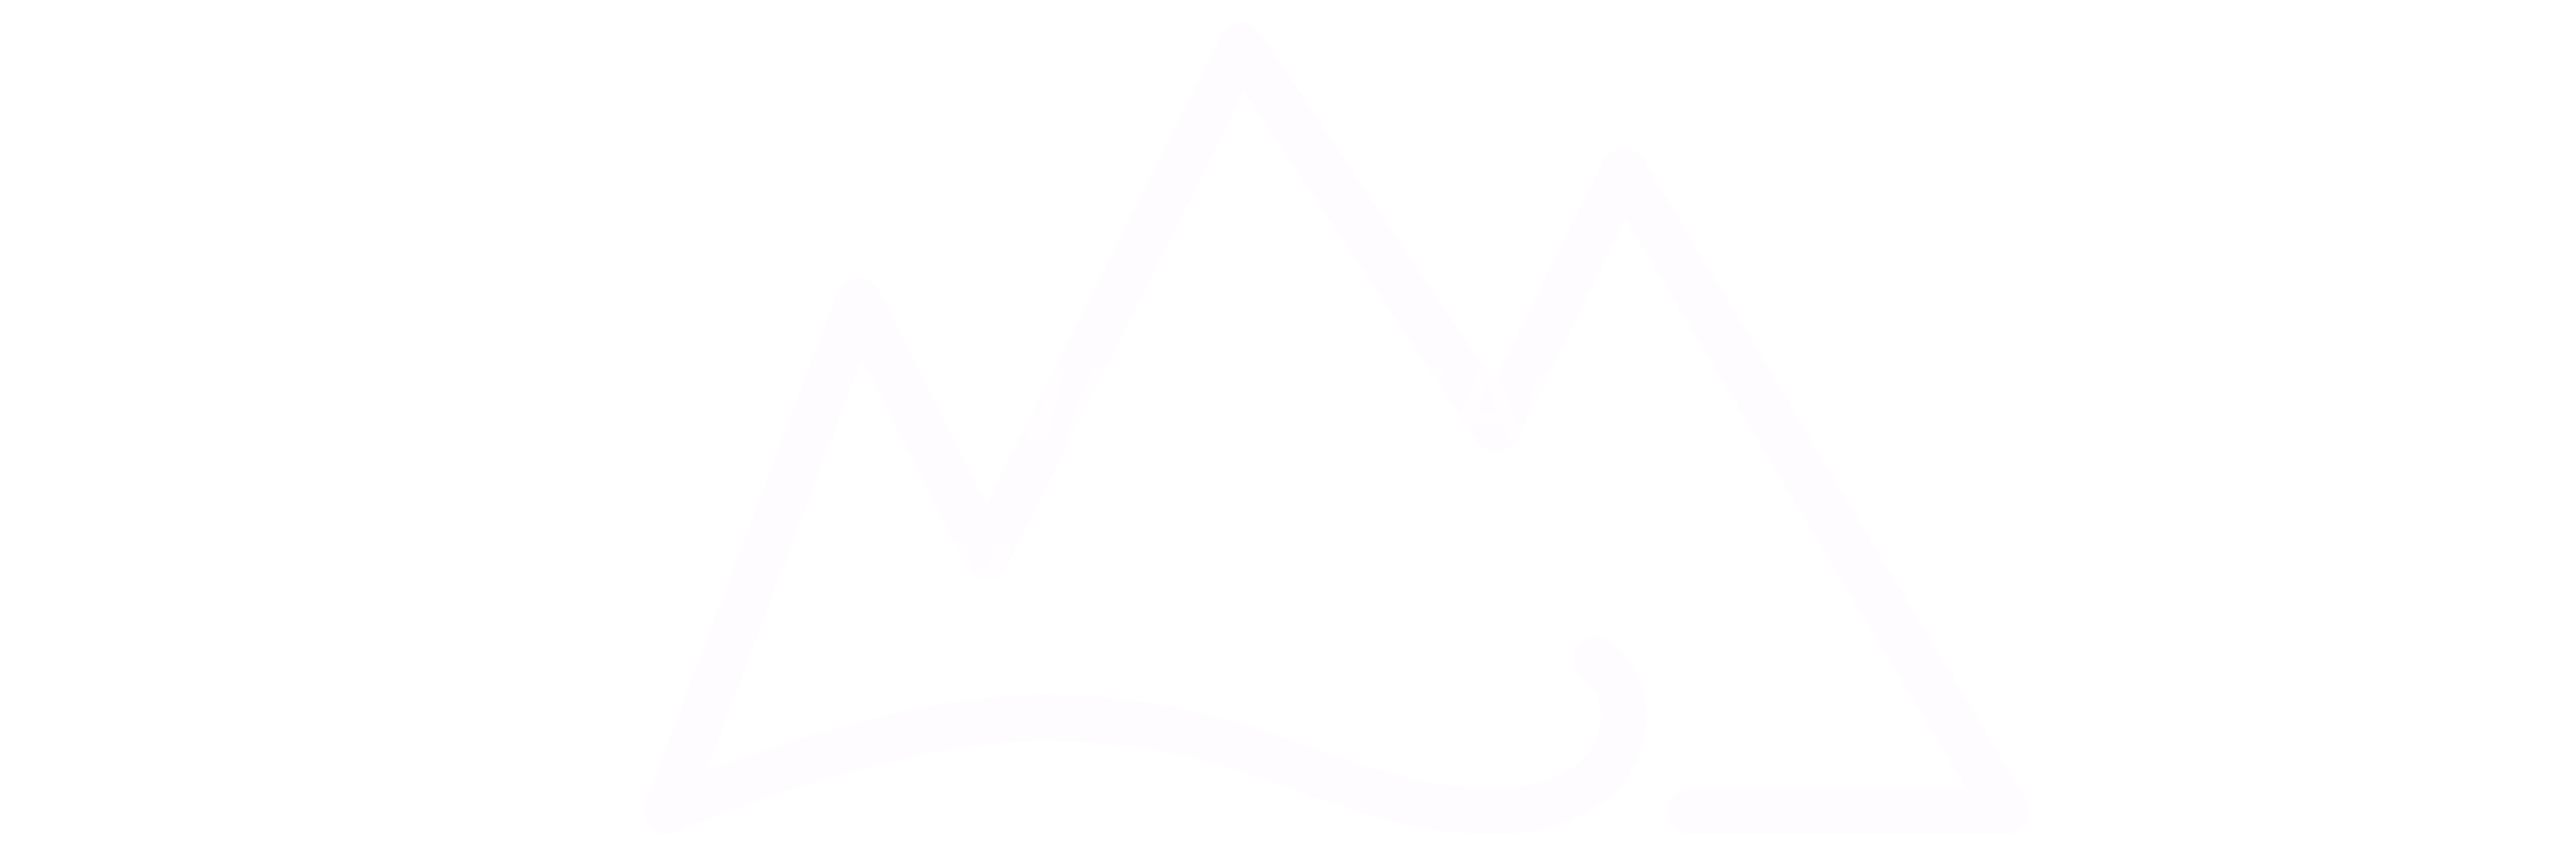 Youth programs at Warm Beach Camp and Conference Center, Stanwood, WA; near Seattle.